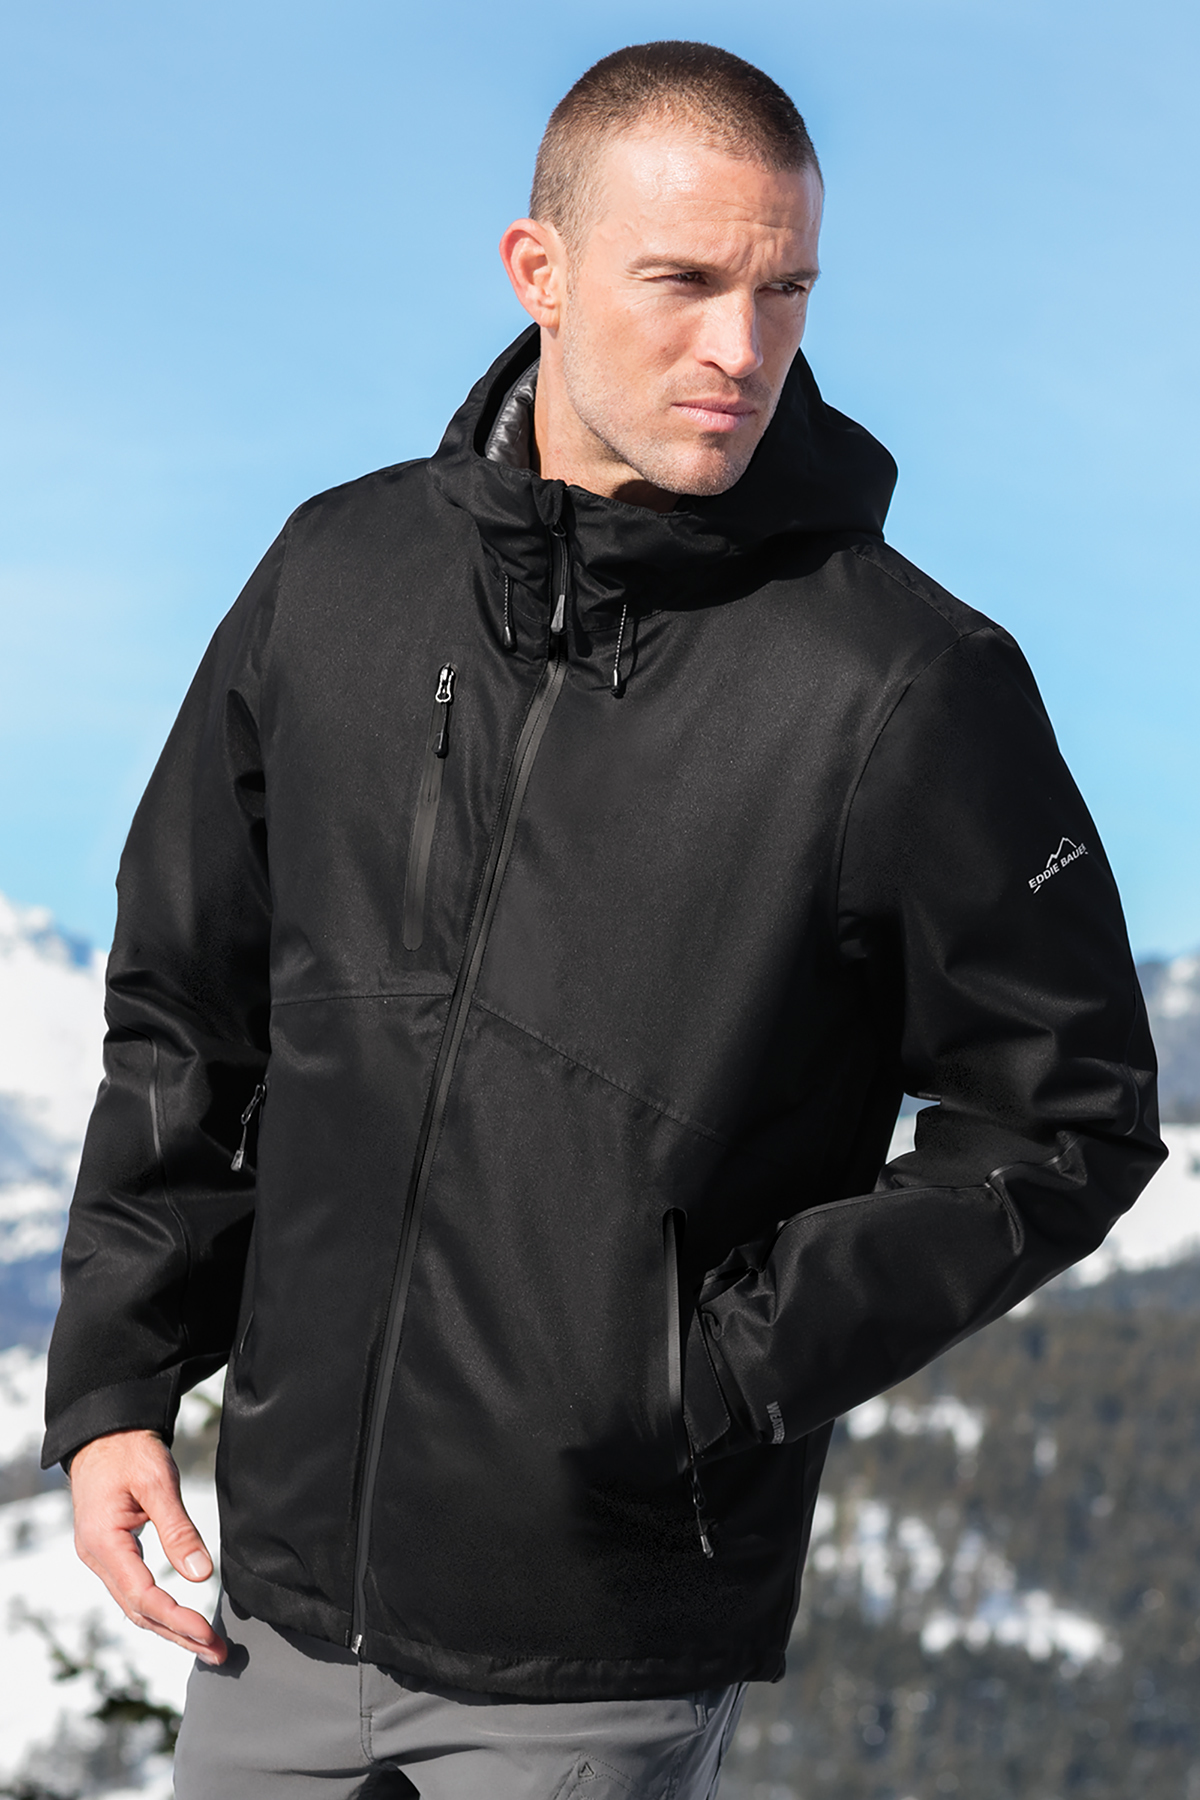 Ed Bauer WeatherEdge Plus 3 in 1 Jacket 3 in 1